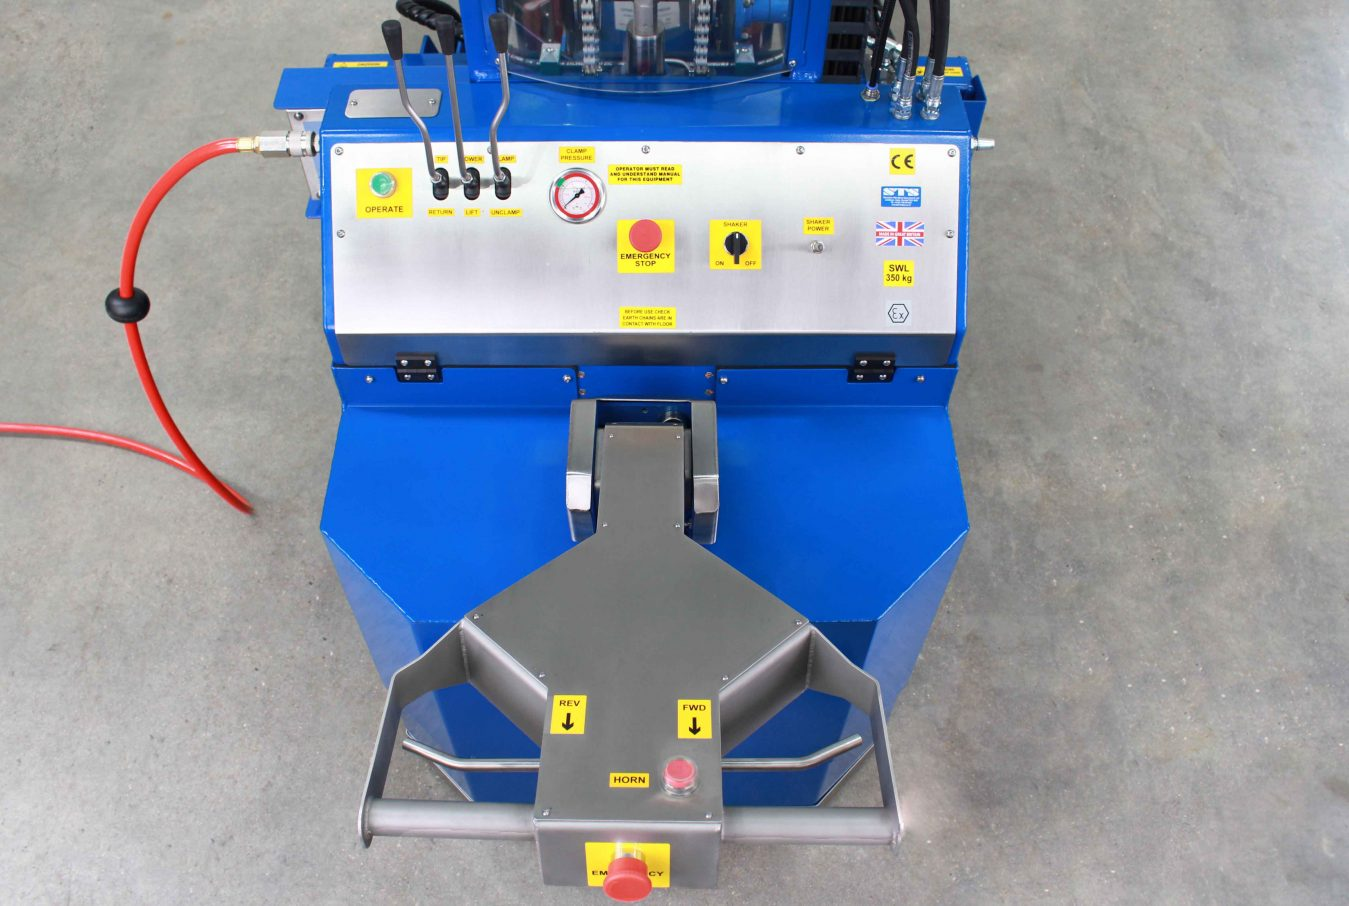 Pneumatic controls features emergency stop and powered lift to rotate and clamp drums